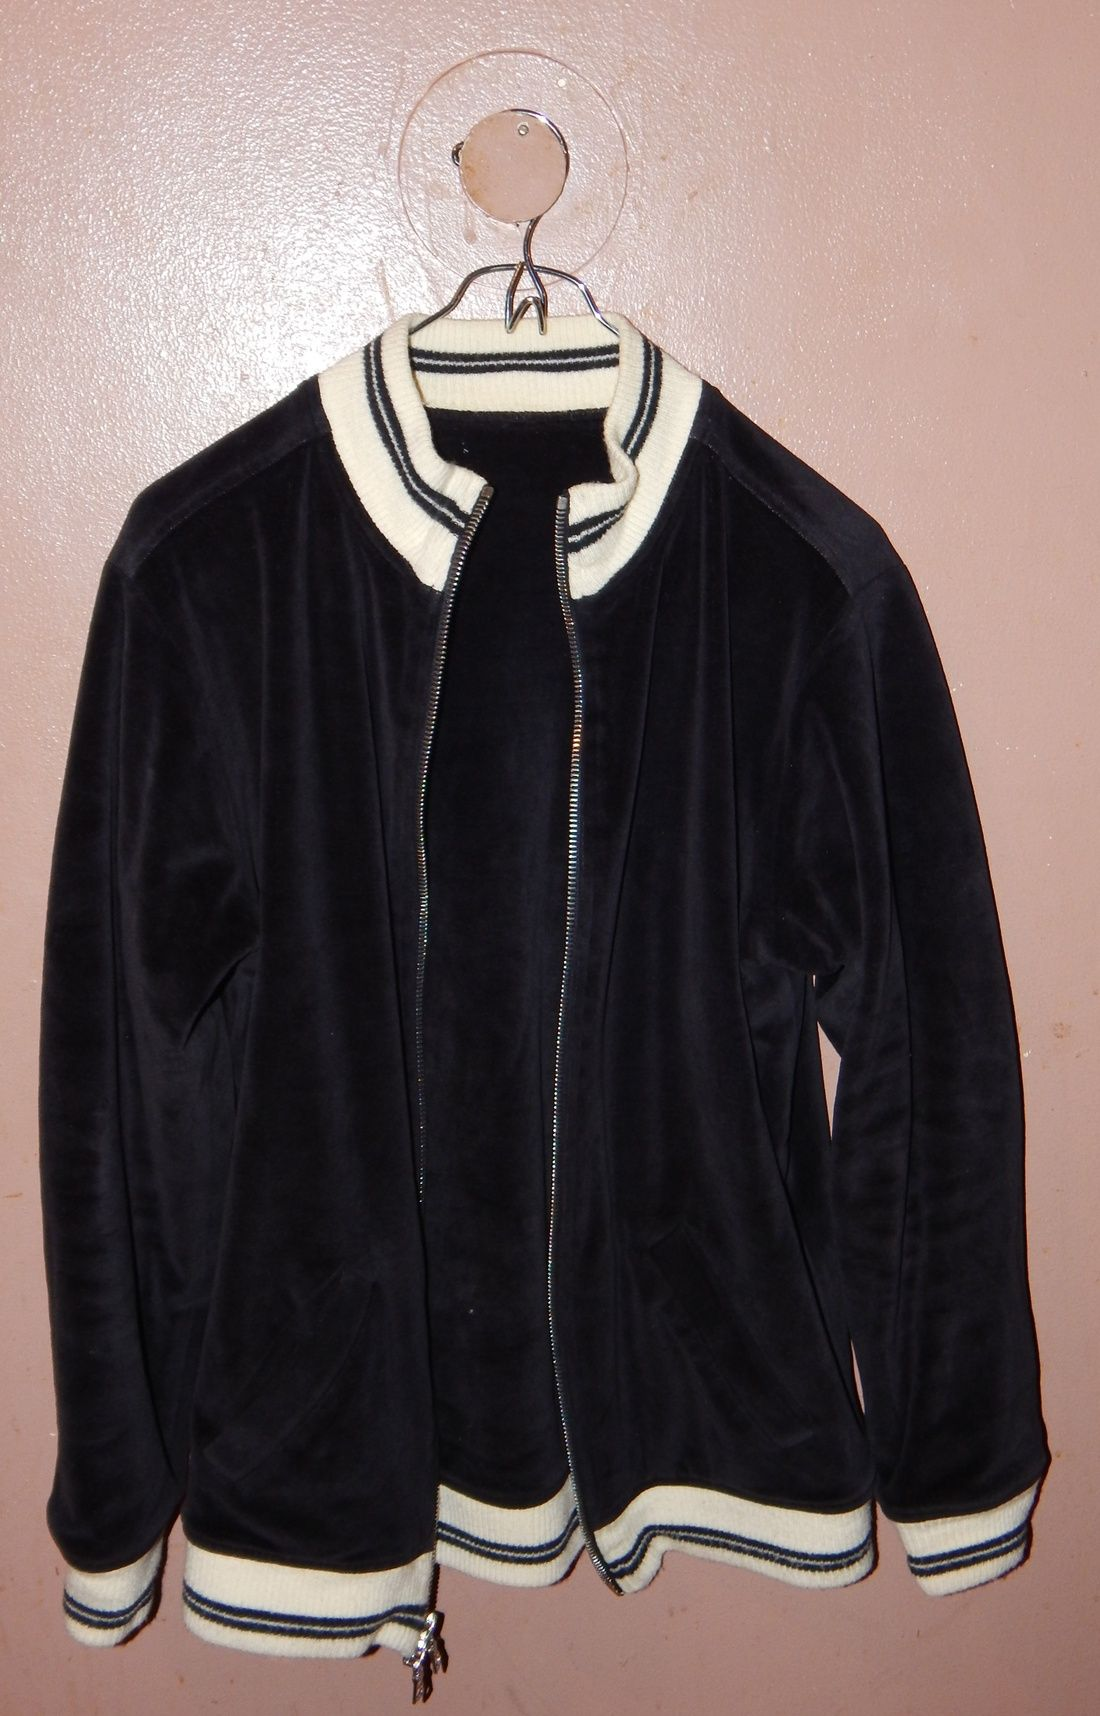 Linder Nyc Linder Nyc Black Velour Track Jacket With 2 Way Zip F/W